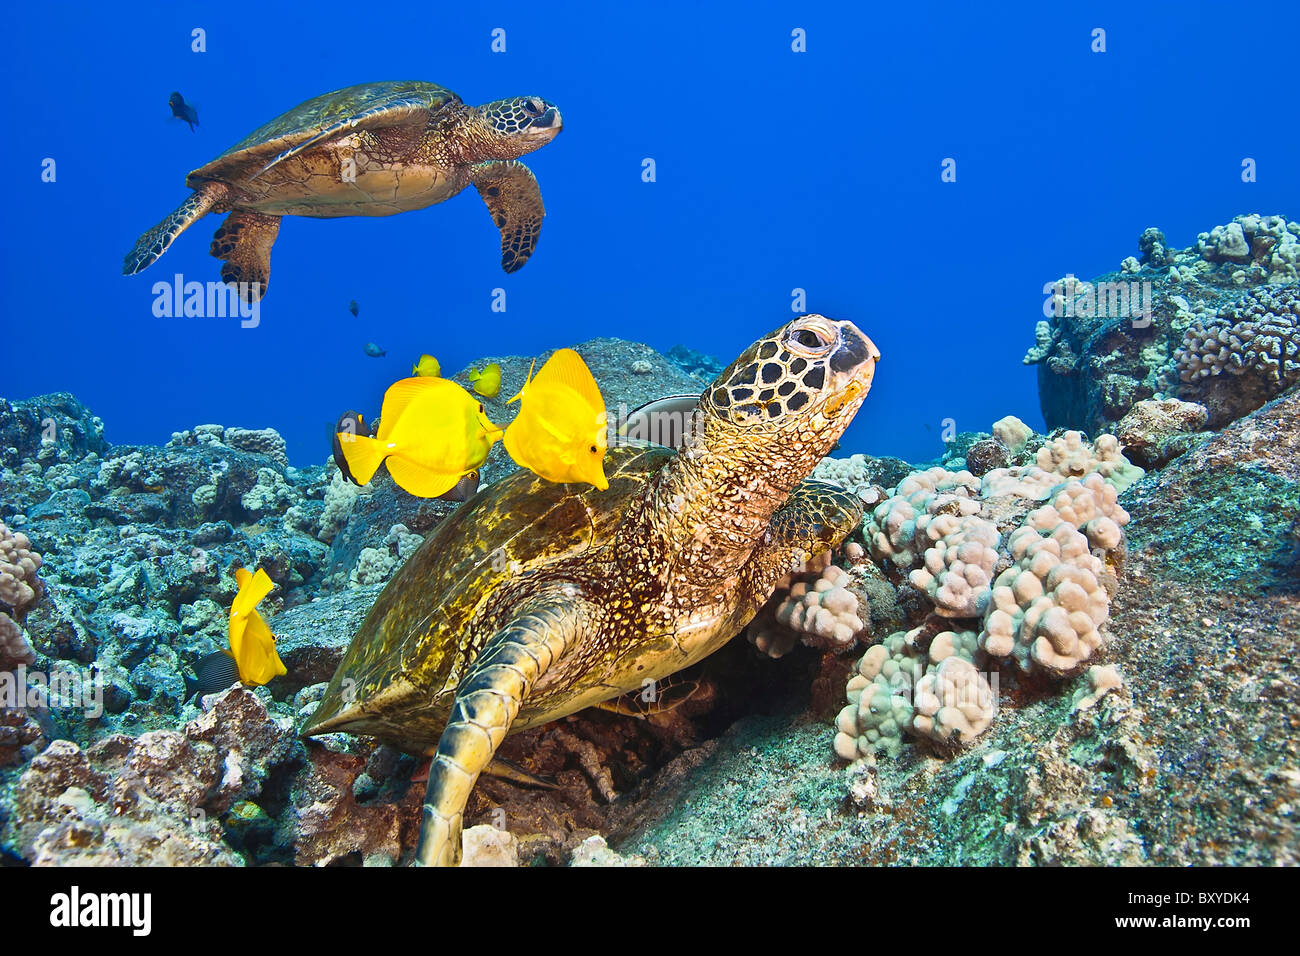 Green Sea Turtle cleaned by Tangs, Chelonia mydas, Big Island, Hawaii, USA - Stock Image